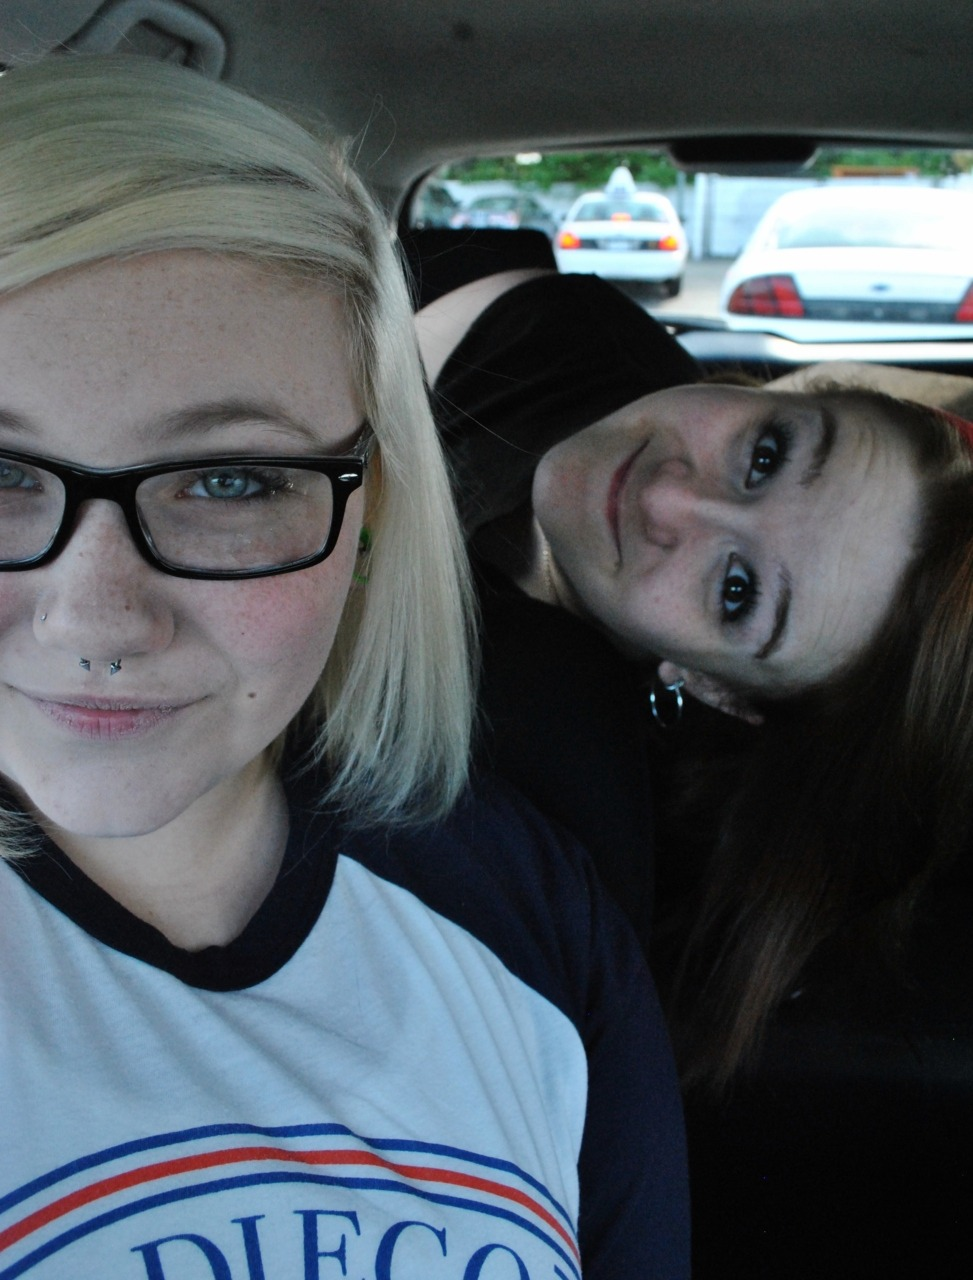 pounce-bounce:  Shes the cutest.  THIS IS SO OLD! Omg my hair. My hairrrrr